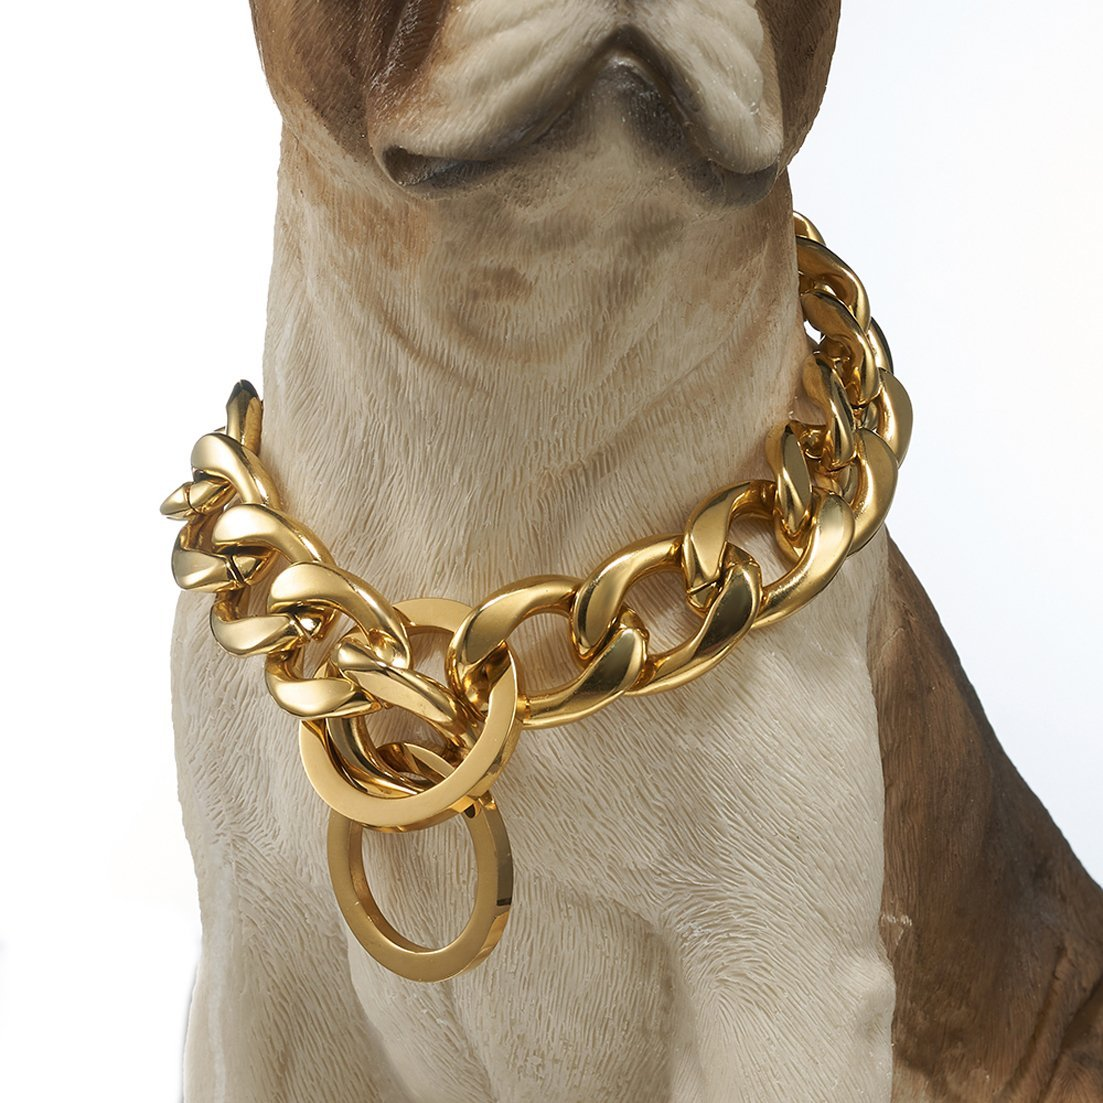 20\ GZMZC 13 15 19mm Strong gold Plated Stainless Steel NK Link Chain Dog Pet Collar Choker Necklace 12-36inch(20inches,19mm)